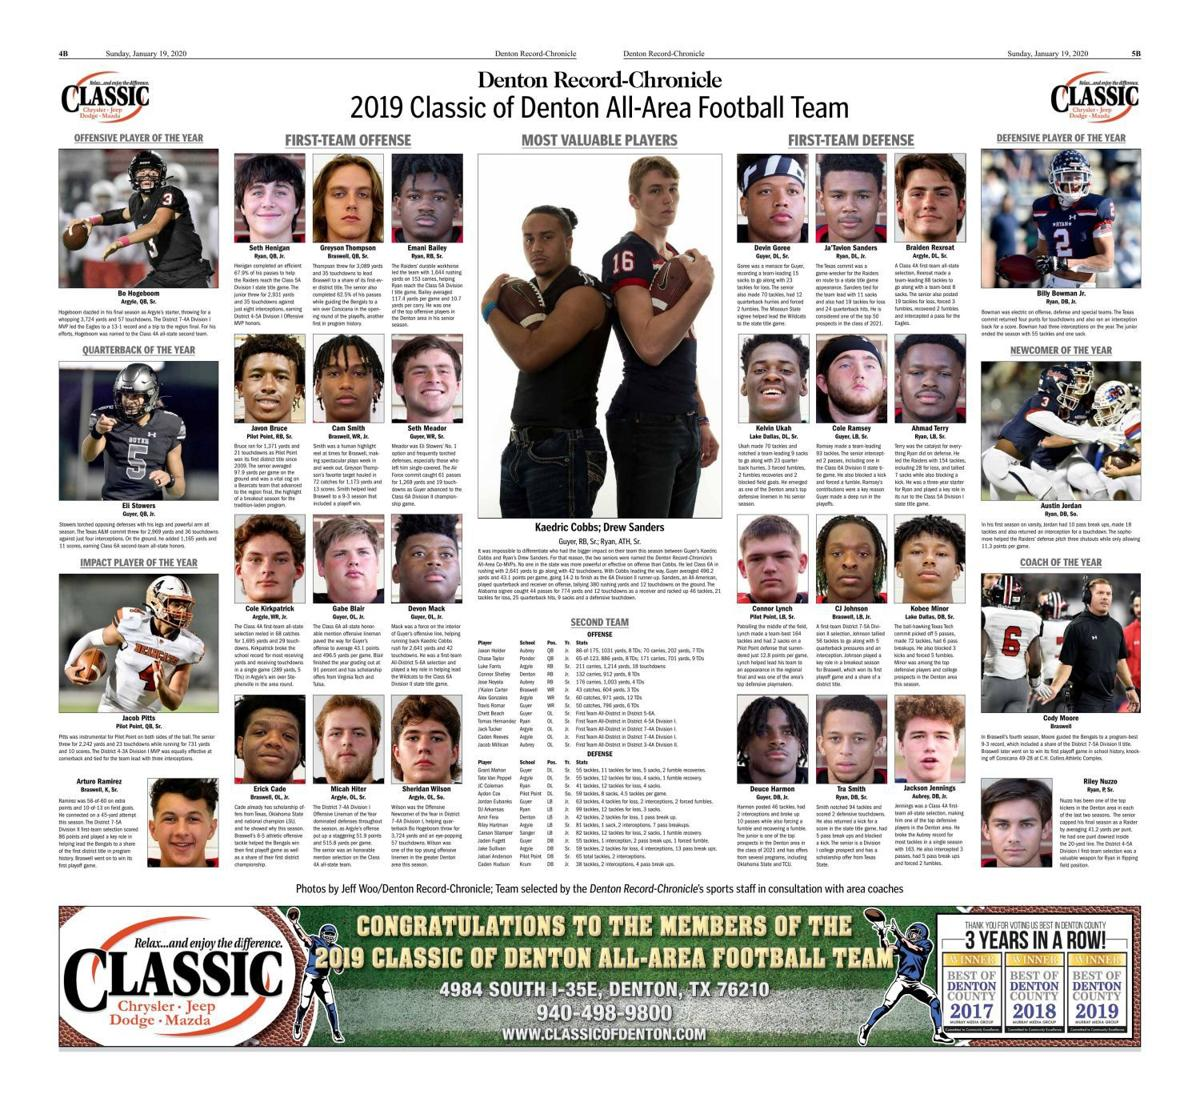 2019 Classic of Denton All-Area Football Team